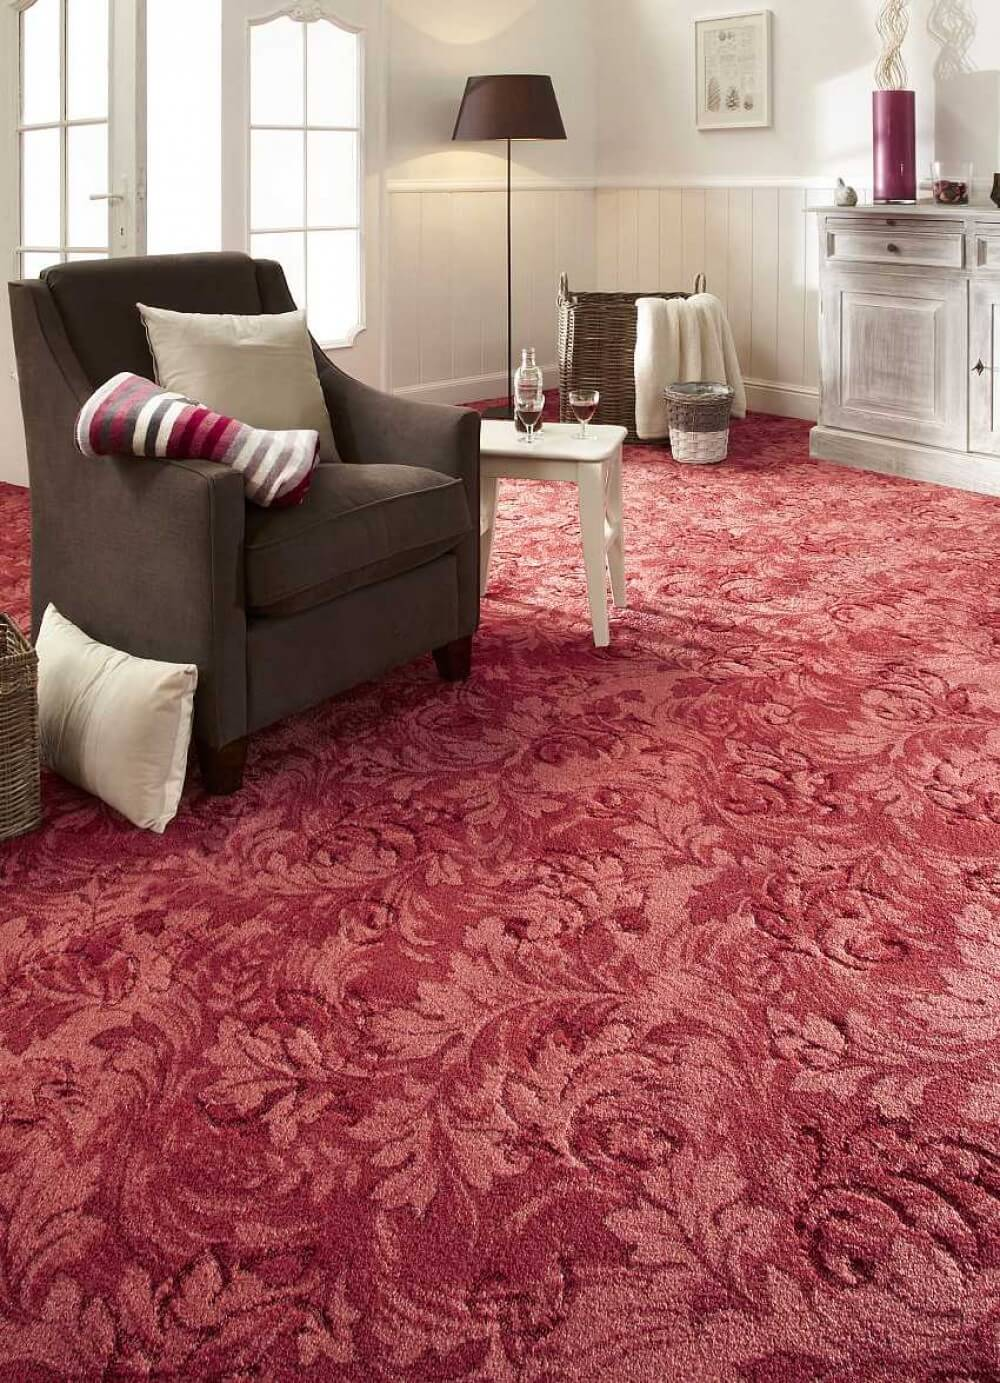 Carpeting Description, Types, Properties and Choosing Advice. Red fluffy material is the zest of the interior